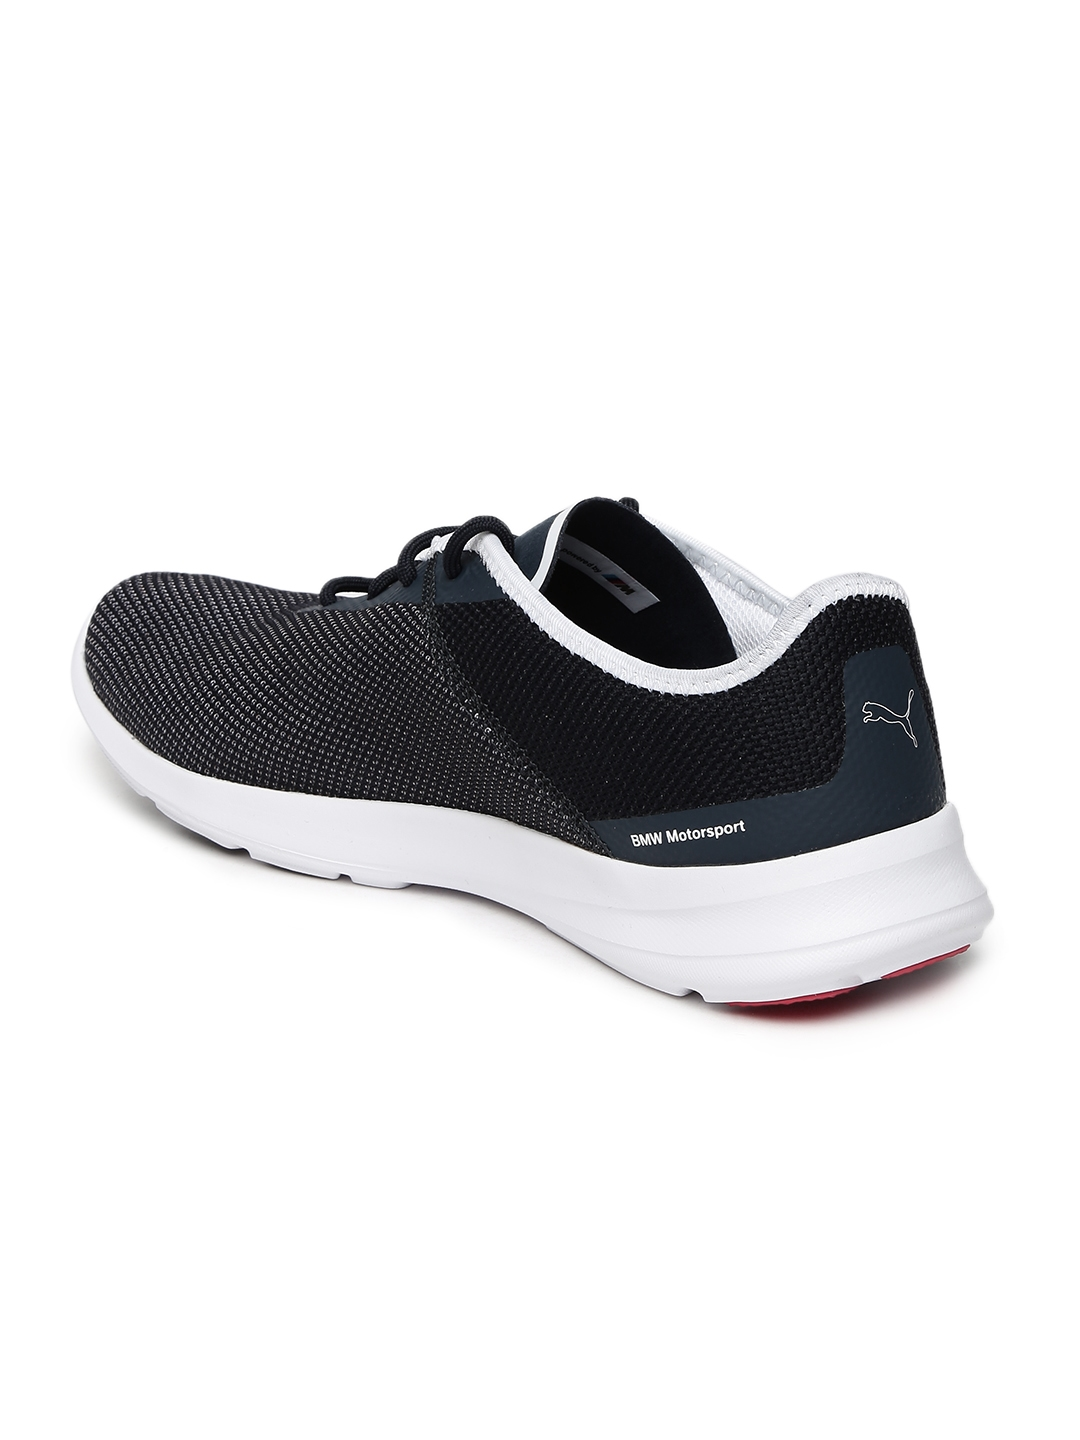 292bf8a0469 Buy Puma Unisex Navy Blue BMW MS Runner Sneakers - Casual Shoes for ...